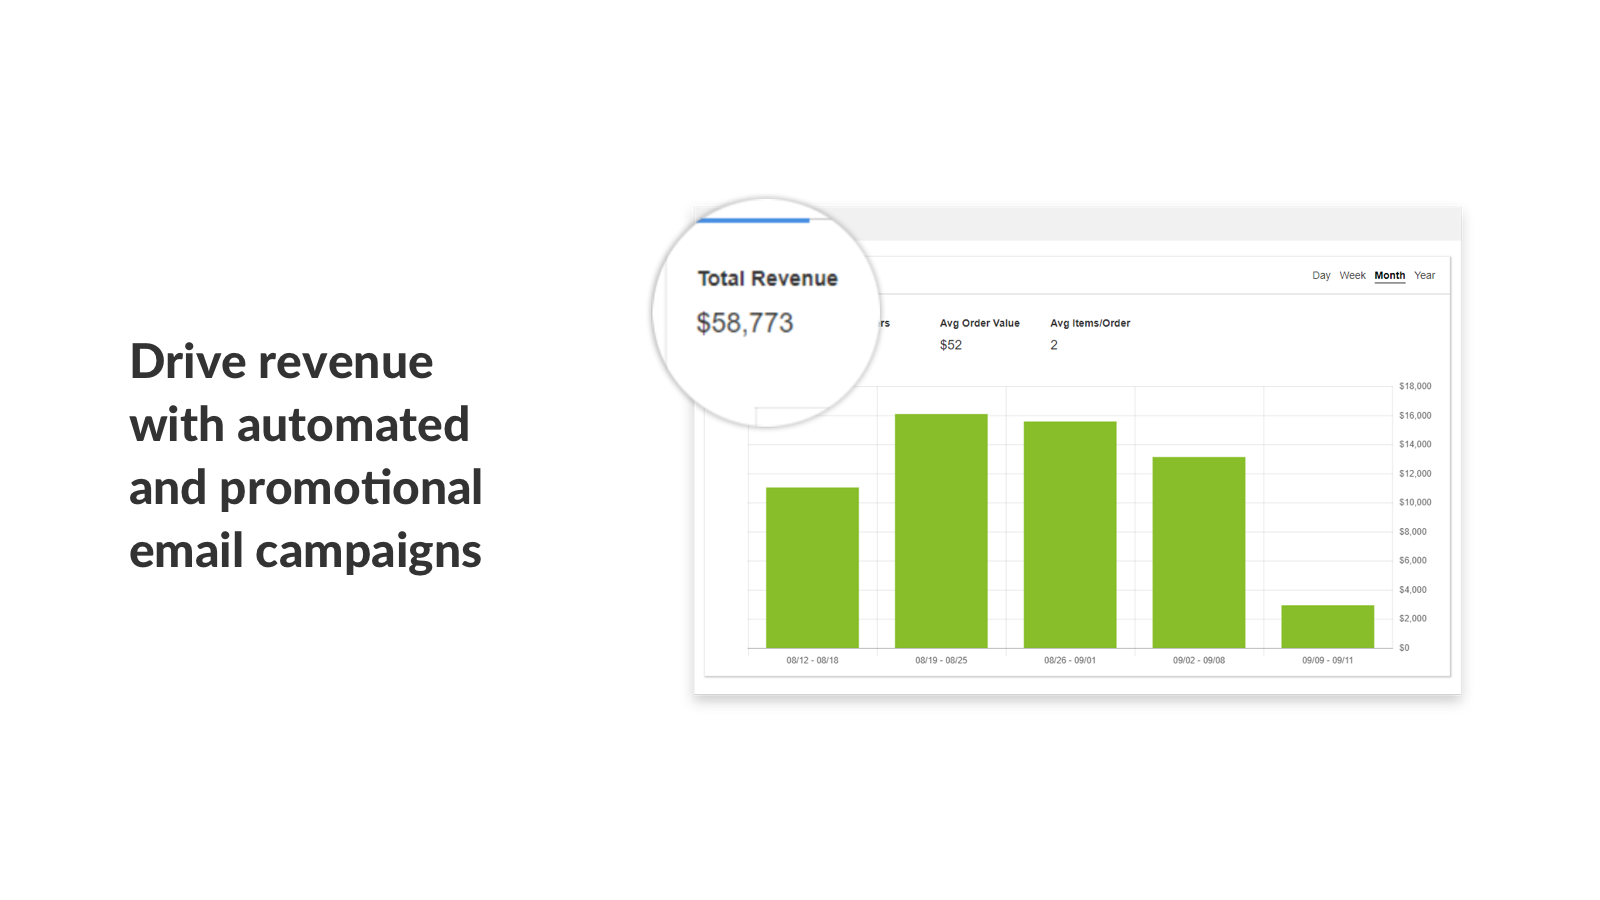 Email: Drive revenue with automated and promotional campaigns